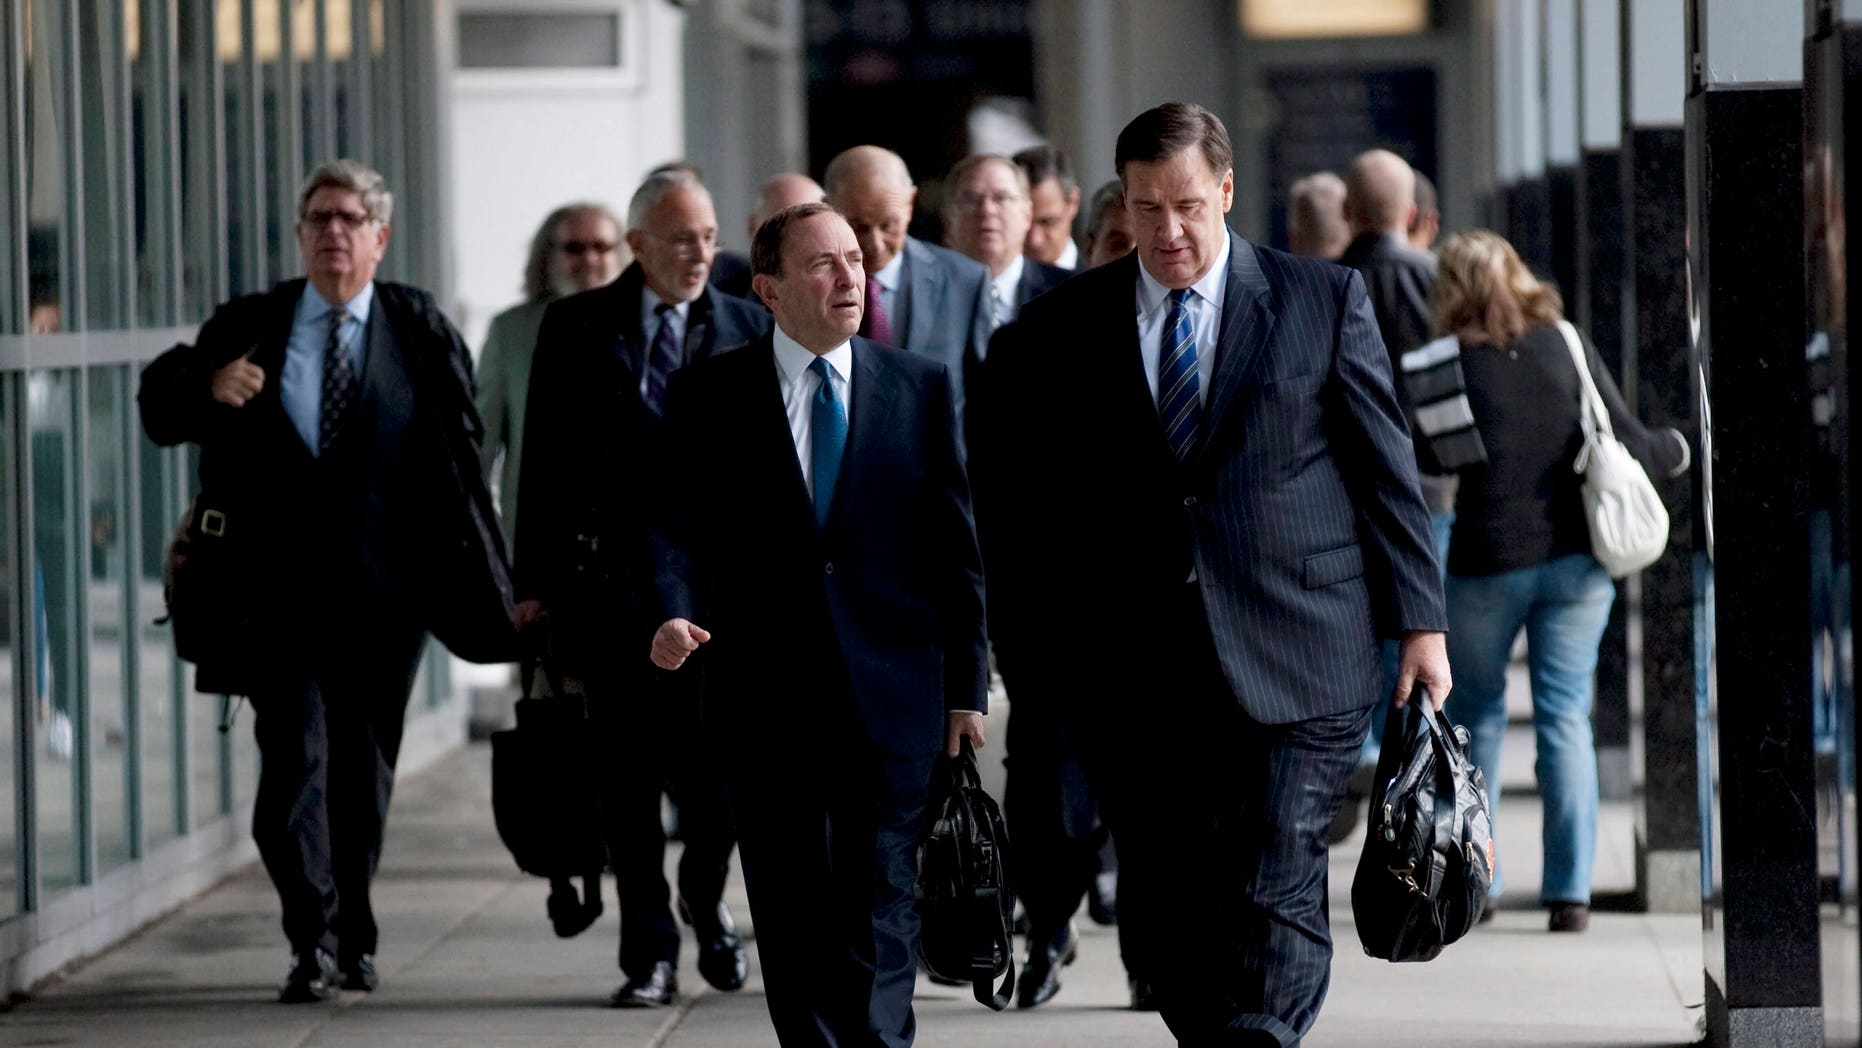 Oct. 18, 2012 File of NHL Commissioner Gary Bettman, left foreground, and Calgary Flames co-owner Murray Edwards arrive for negotiations with the Players Association in Toronto.